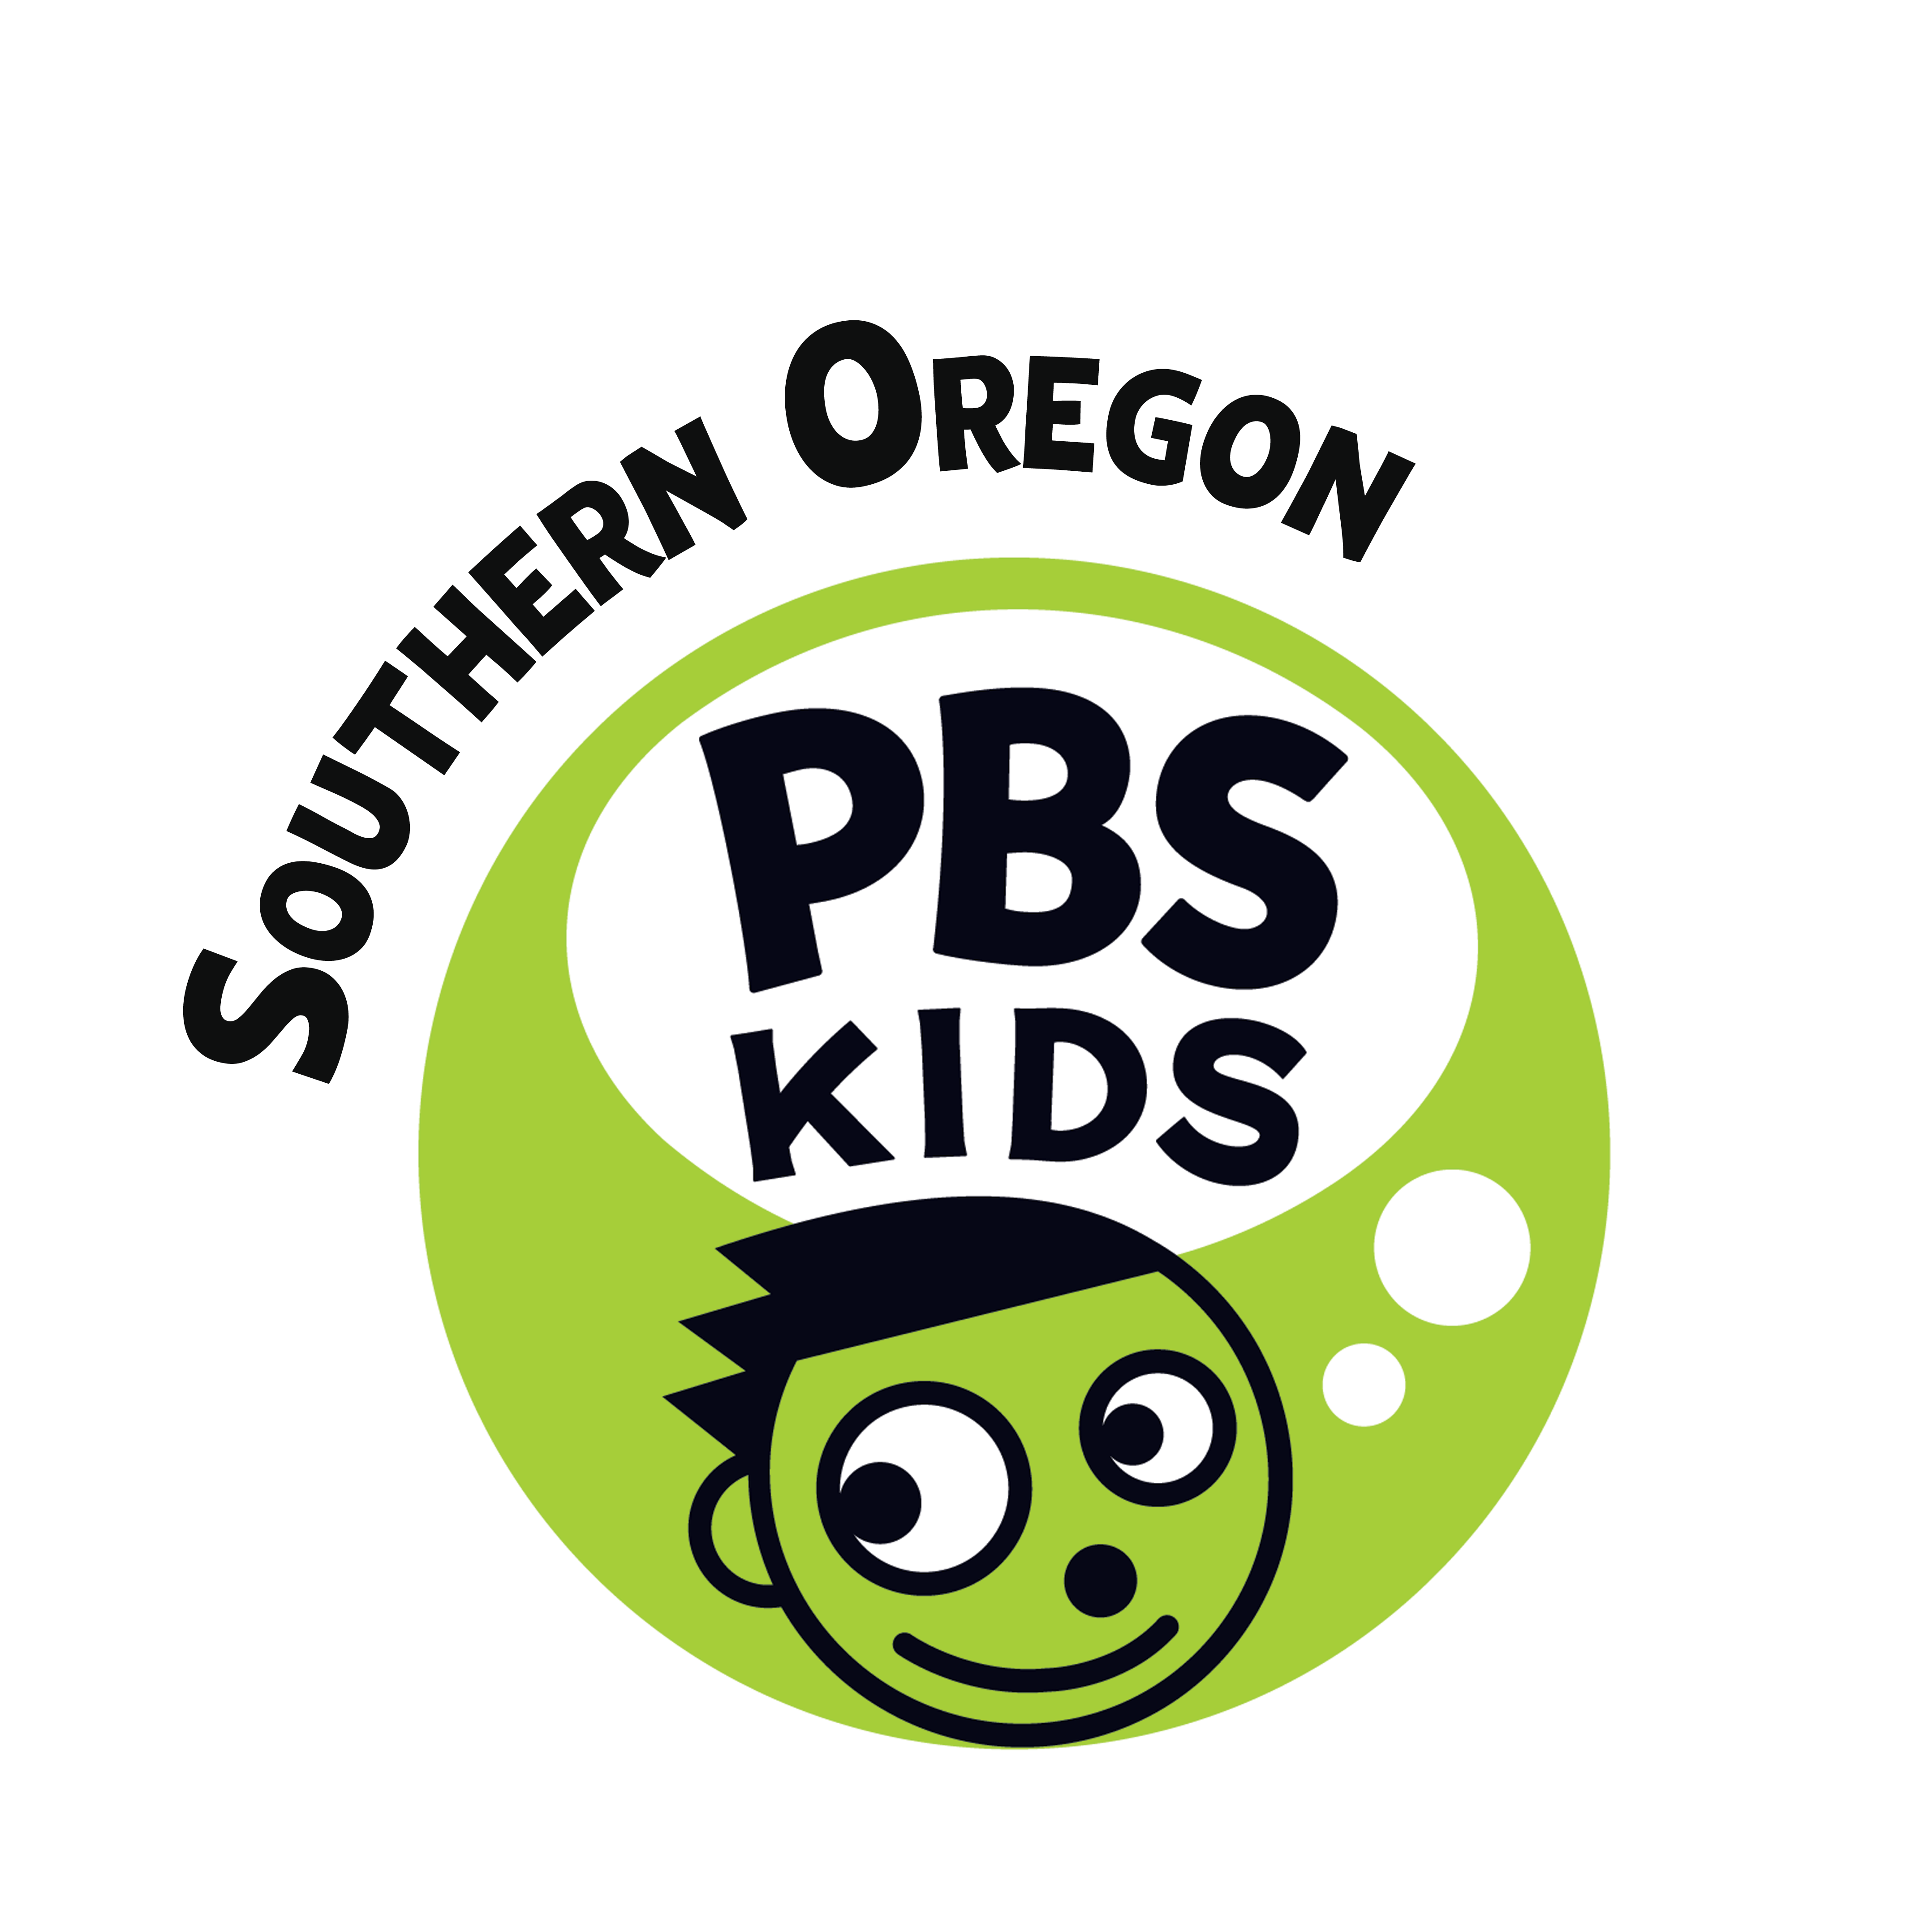 Southern Oregon PBS Kids Logo